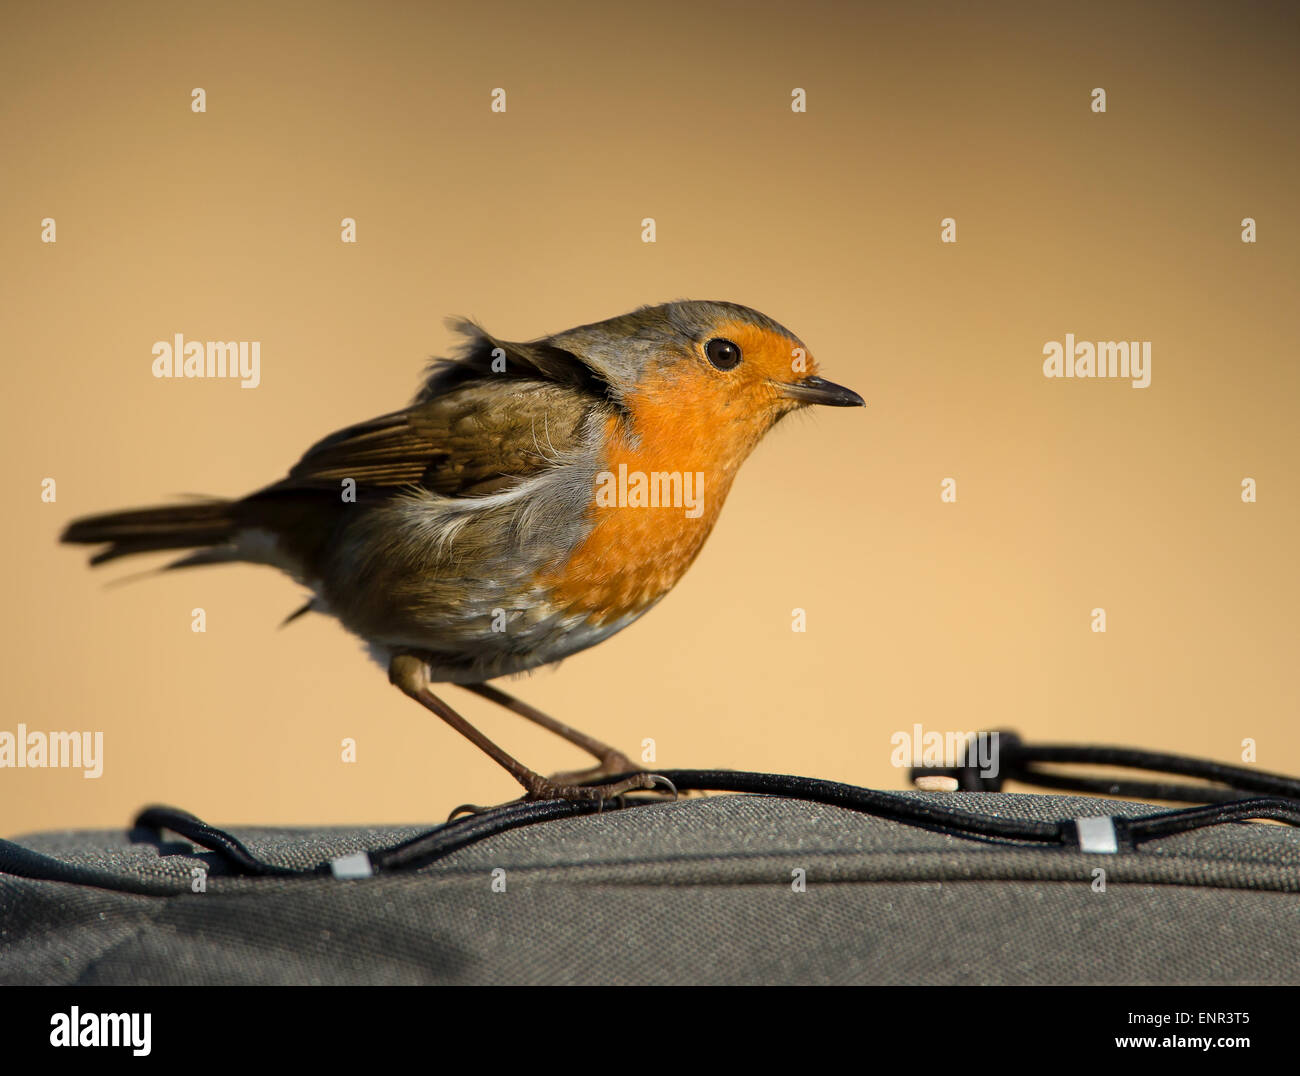 Tame Robin siting on a bag rucksack - Stock Image